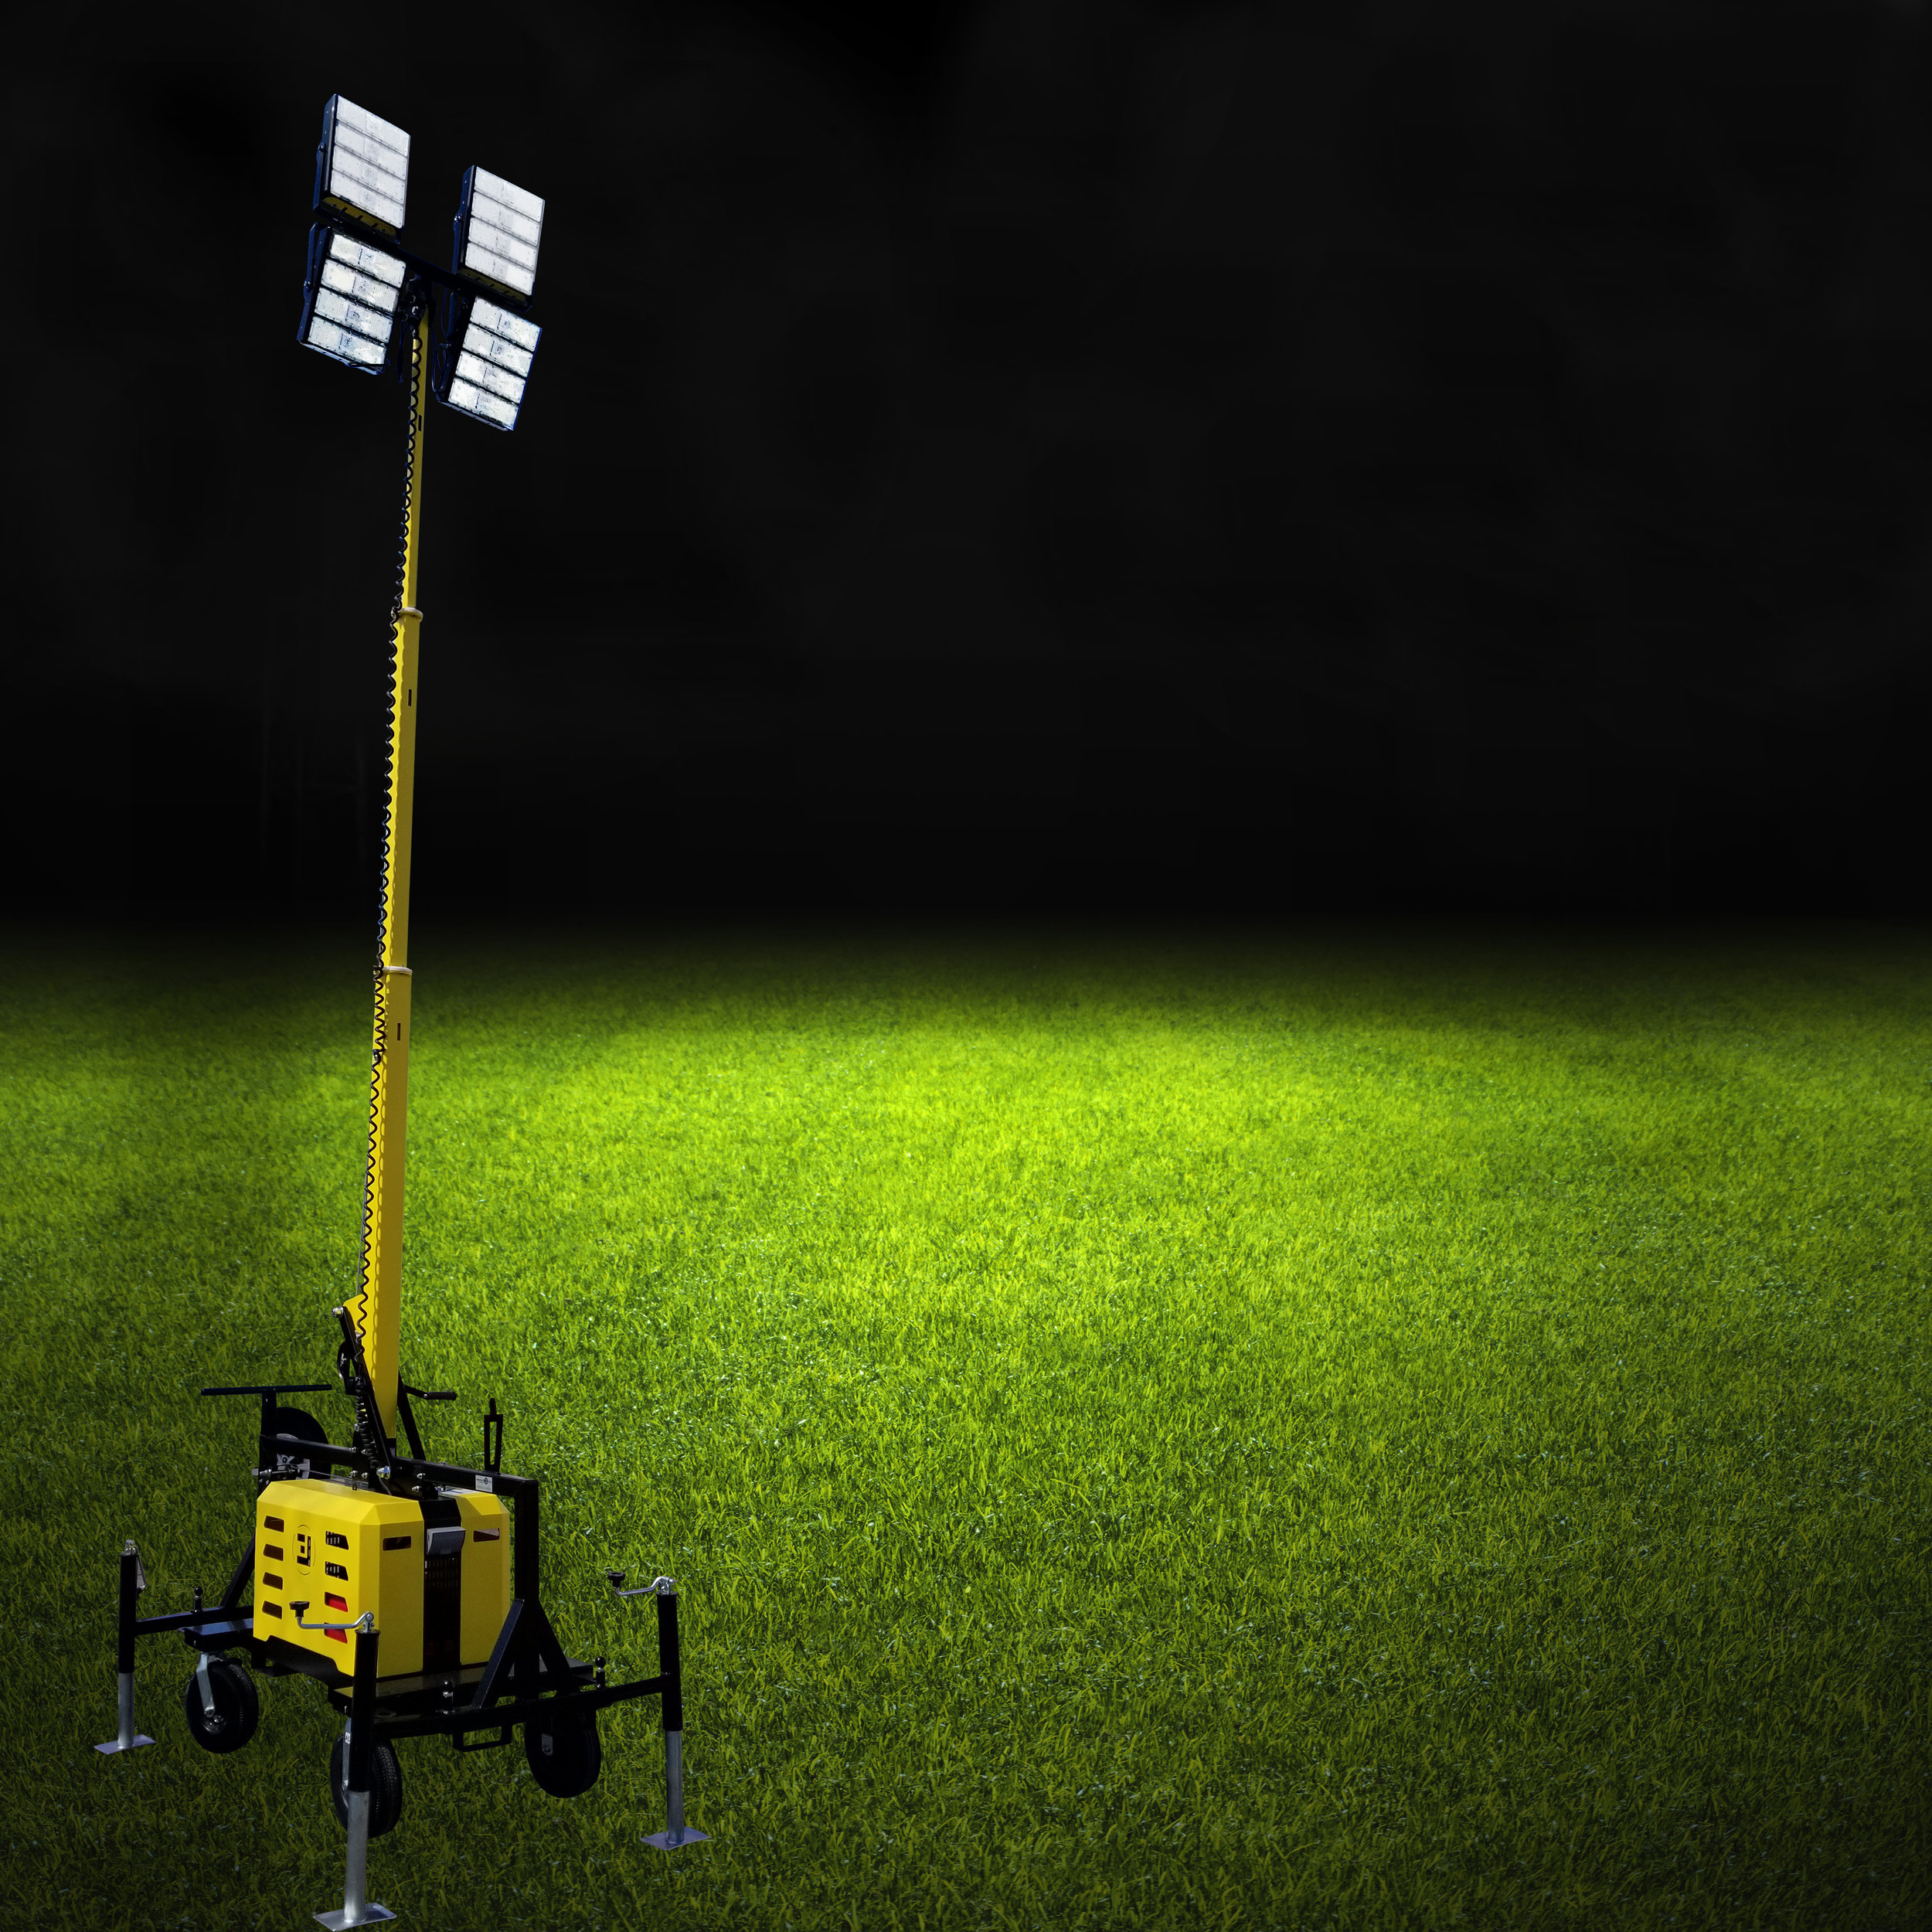 For All Applications - Give us a call or send us an email if you want to know how The Beacon LED Tower can work for your application!Scroll to the bottom of the page to access our sport lighting form.